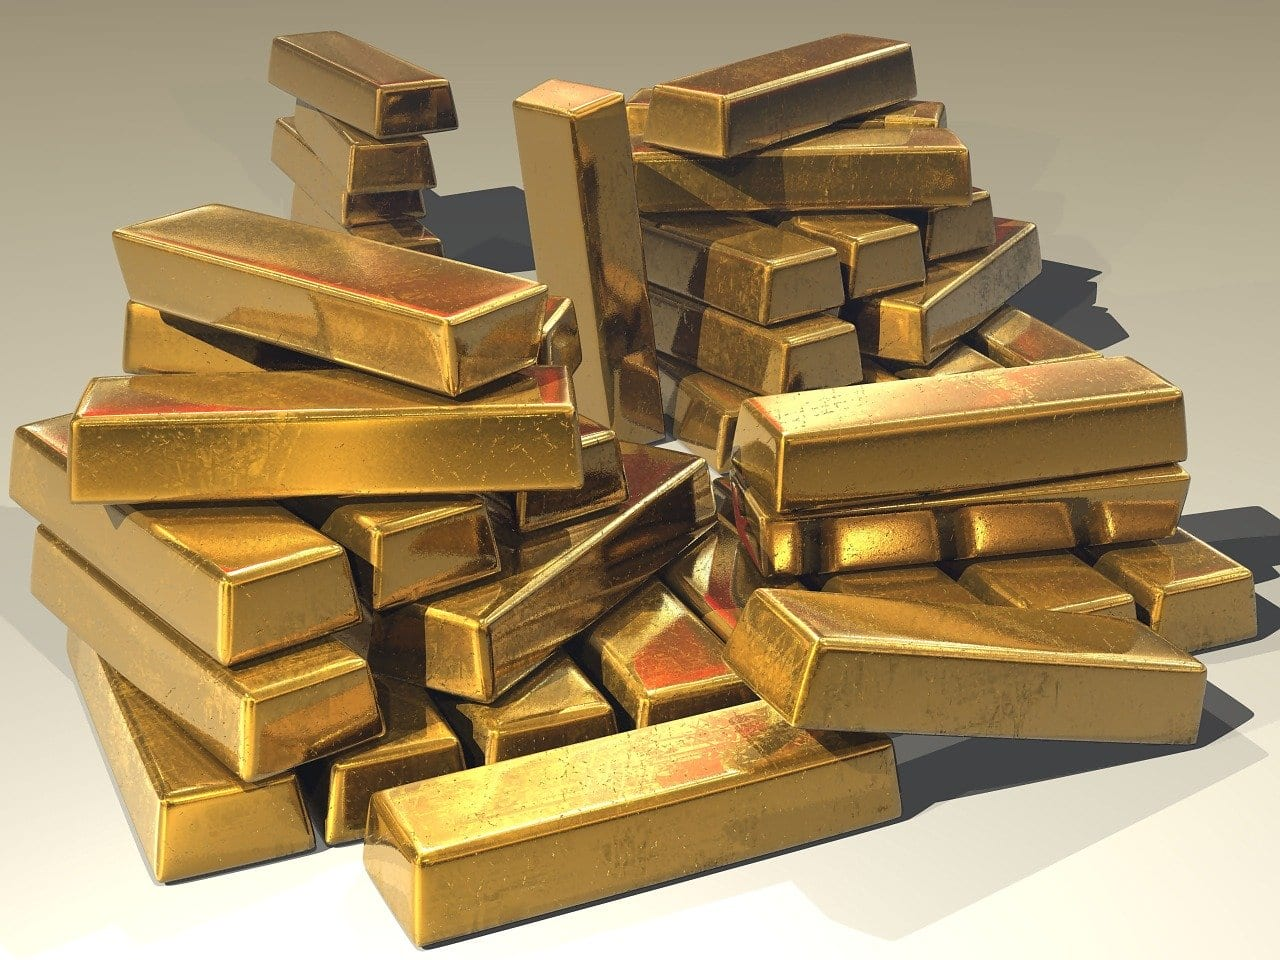 Harmony Gold acquires AngloGold Ashanti assets